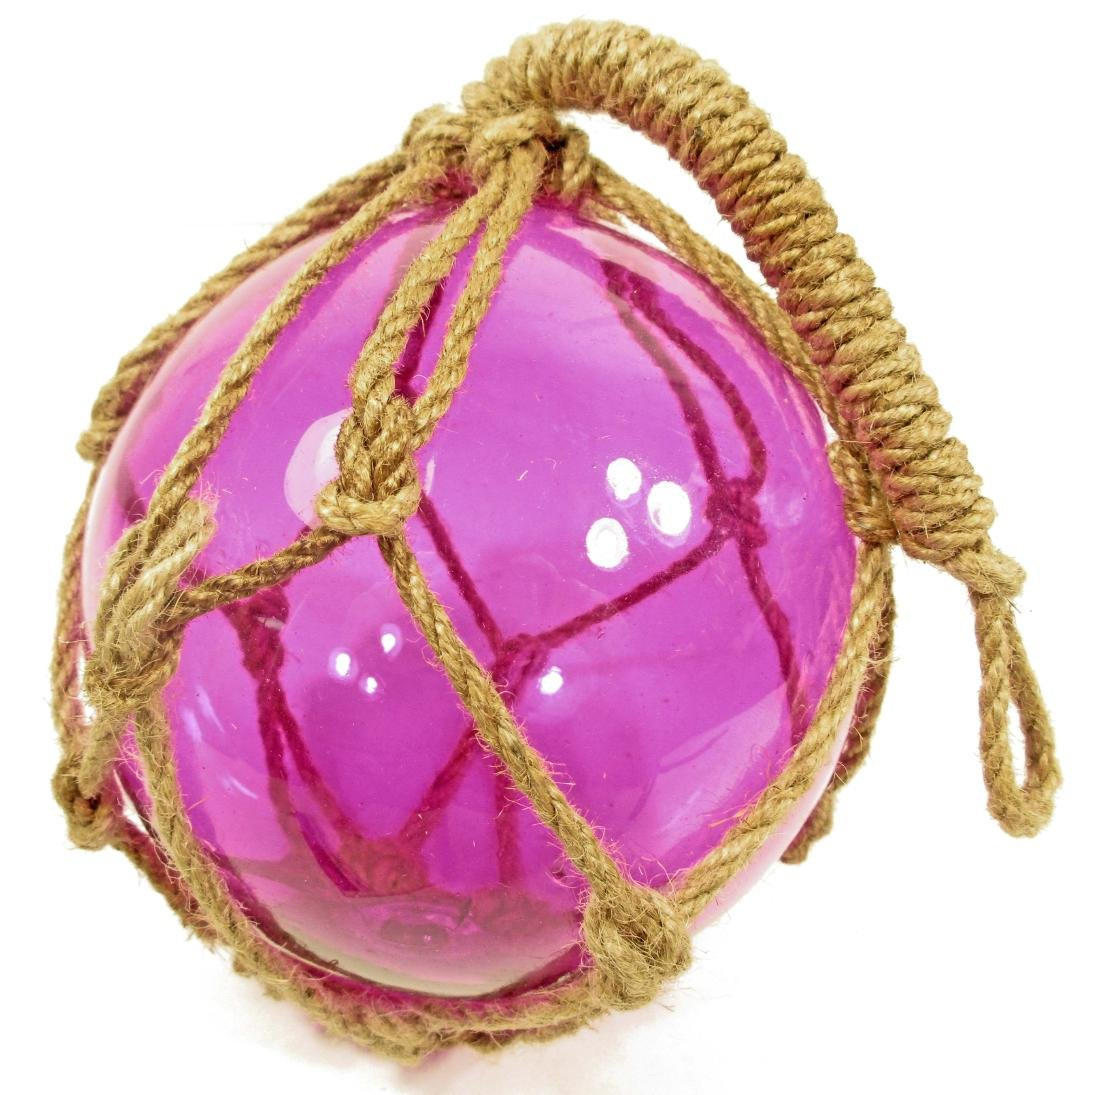 PURPLE GLASS FISHING FLOAT W/ NET